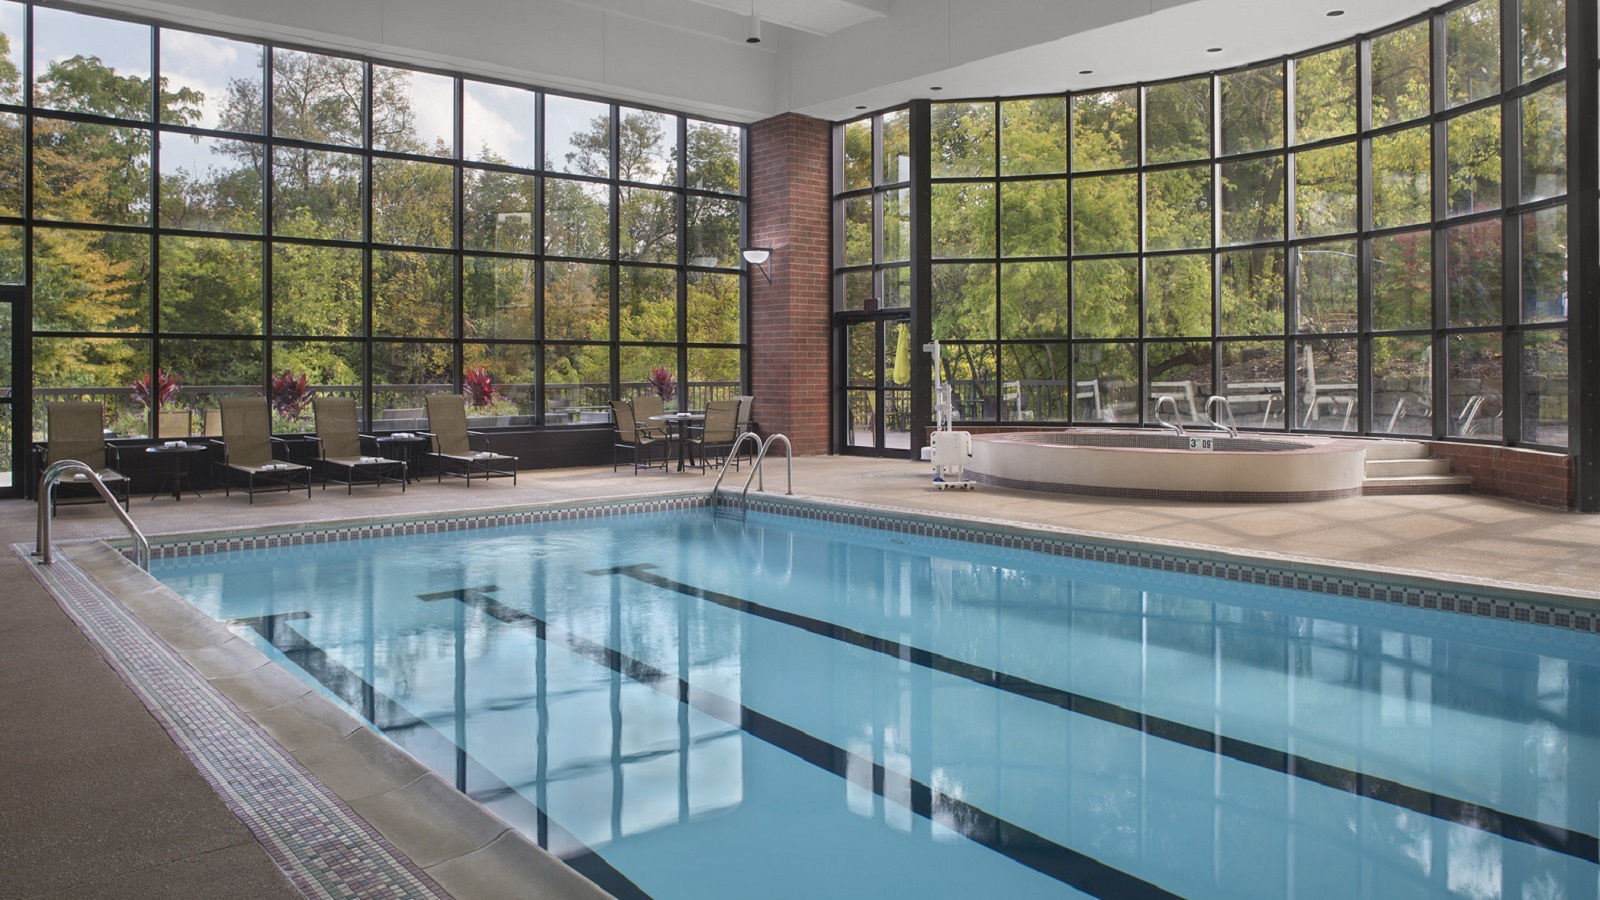 Akron Hotel Features - Pool